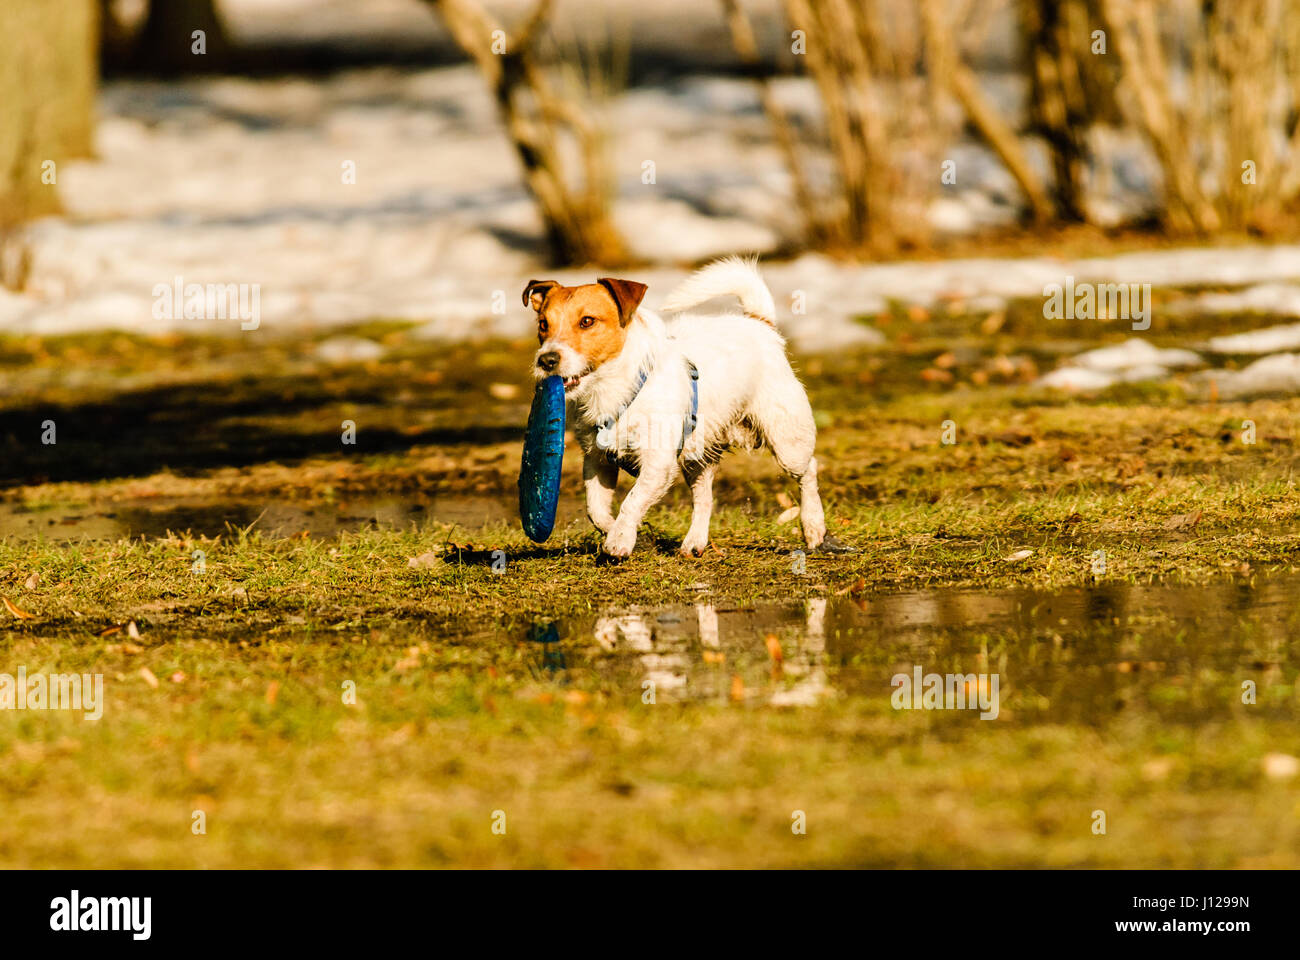 Dog playing toss and fetch game with disc at spring park - Stock Image